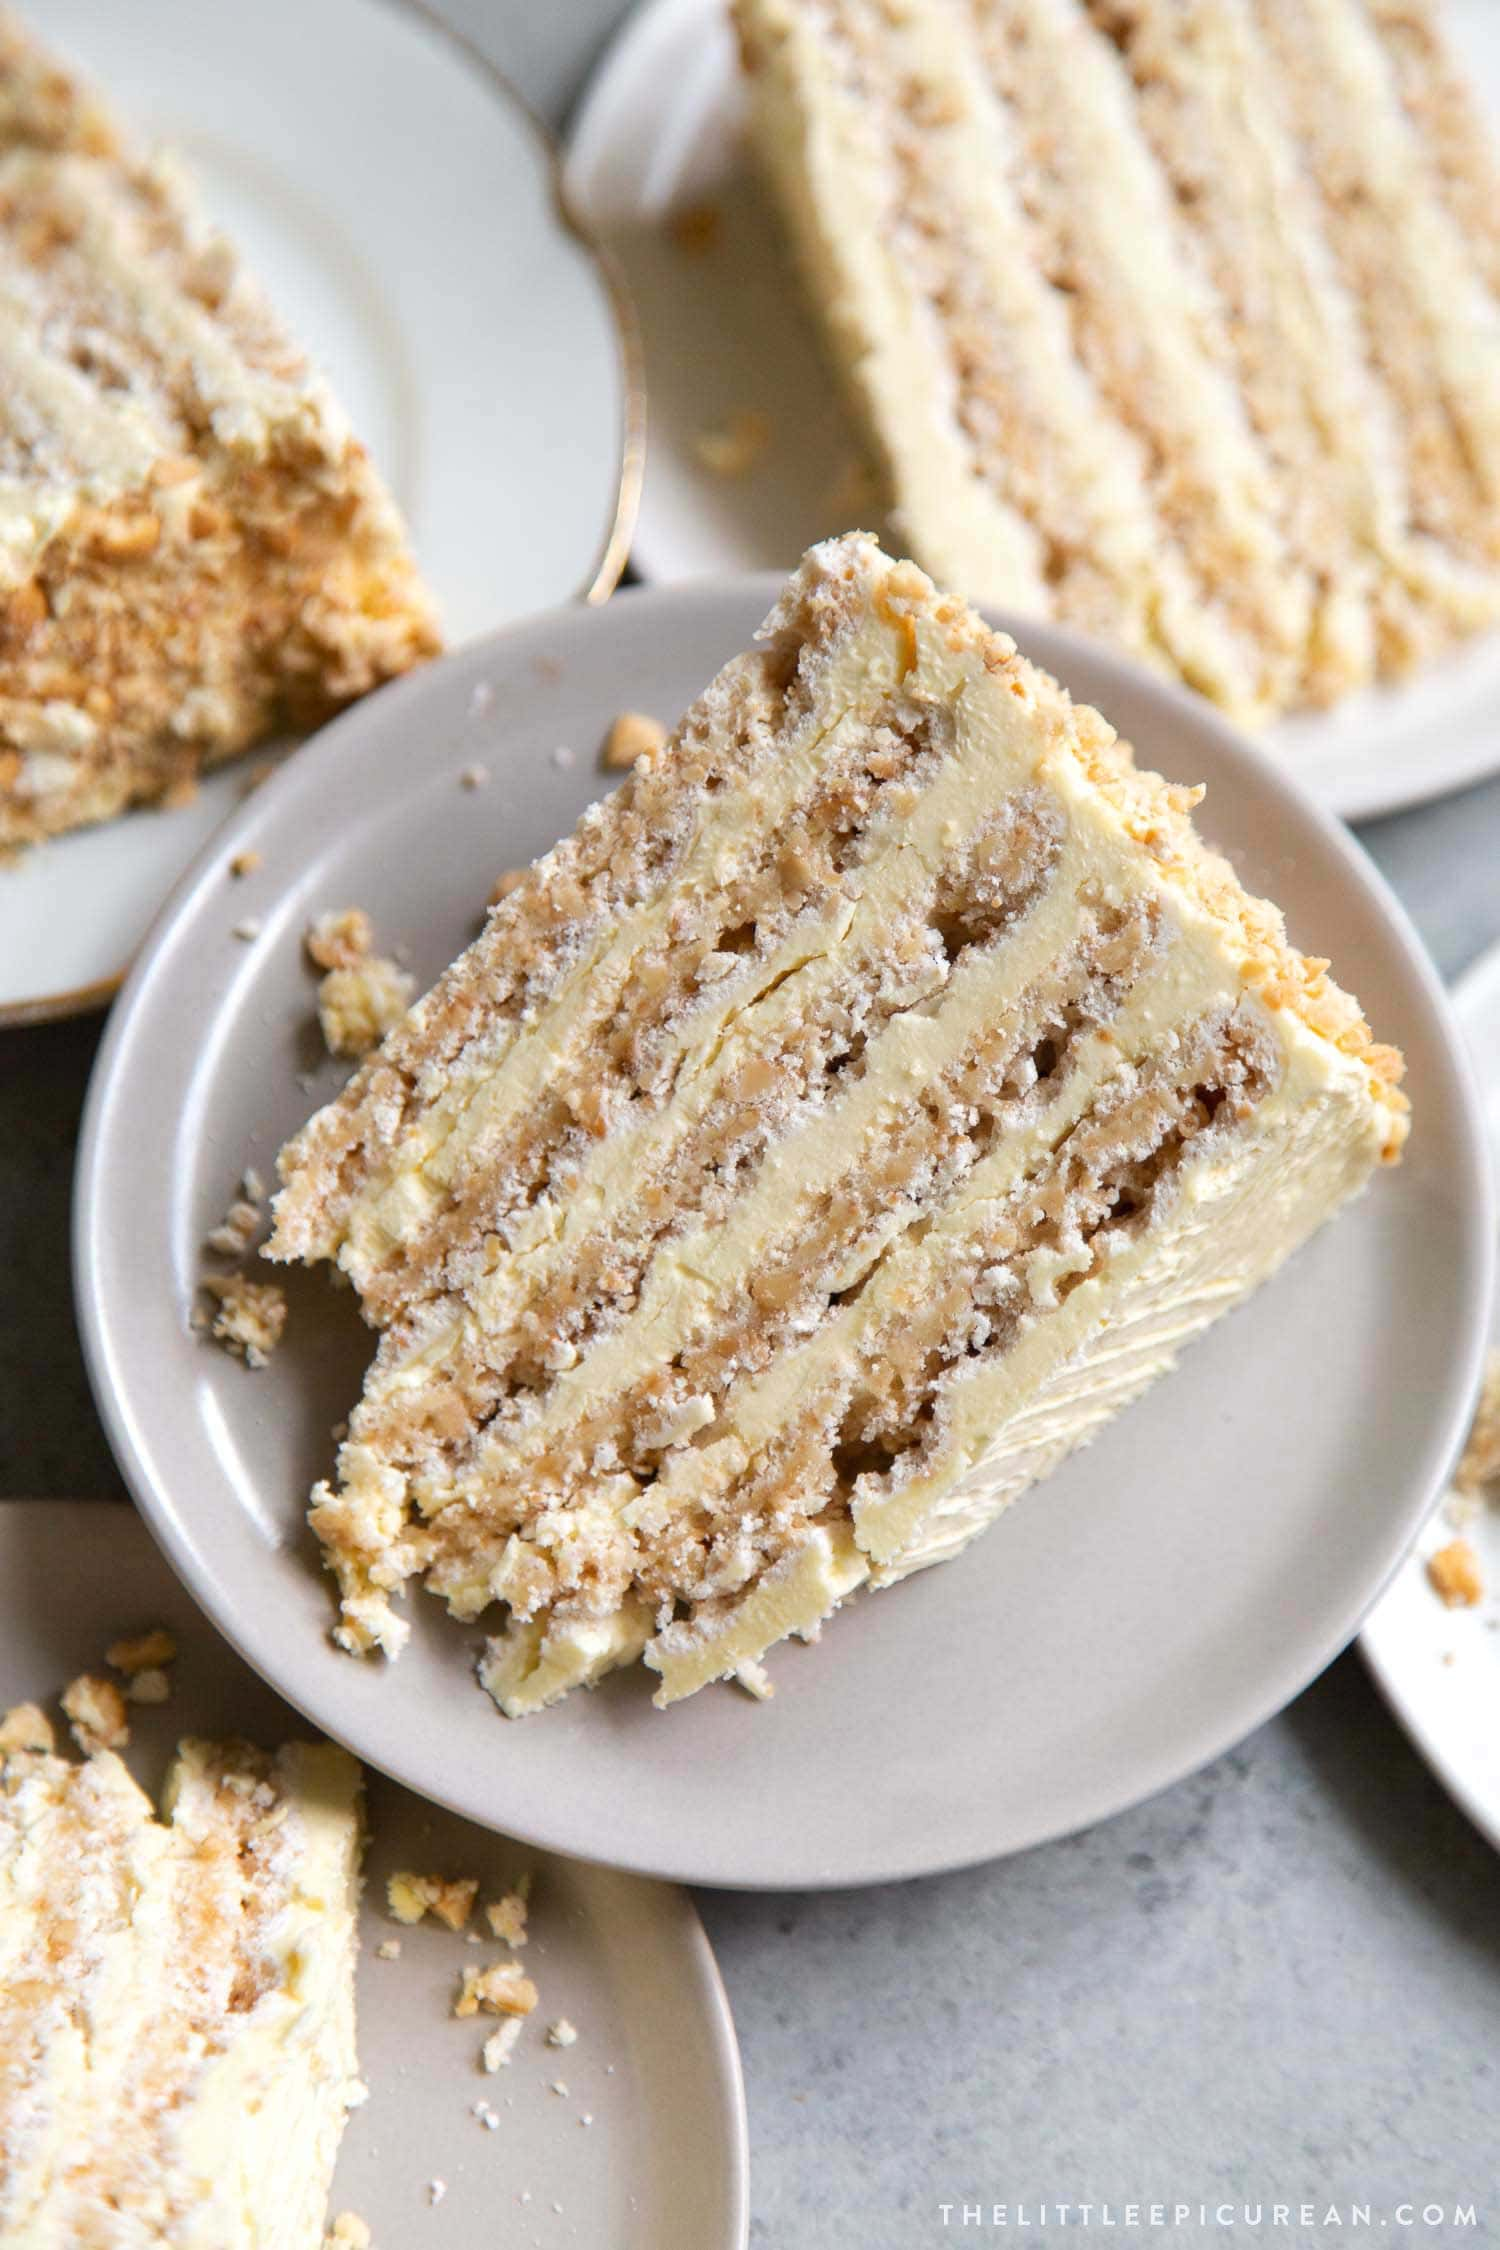 Sans Rival cake slice. Filipino cake consisting of cashew dacquoise layered with French buttercream. #cake #dessert #glutenfree #cashews #buttercream #filipino #filipinodesserts #filipinorecipes